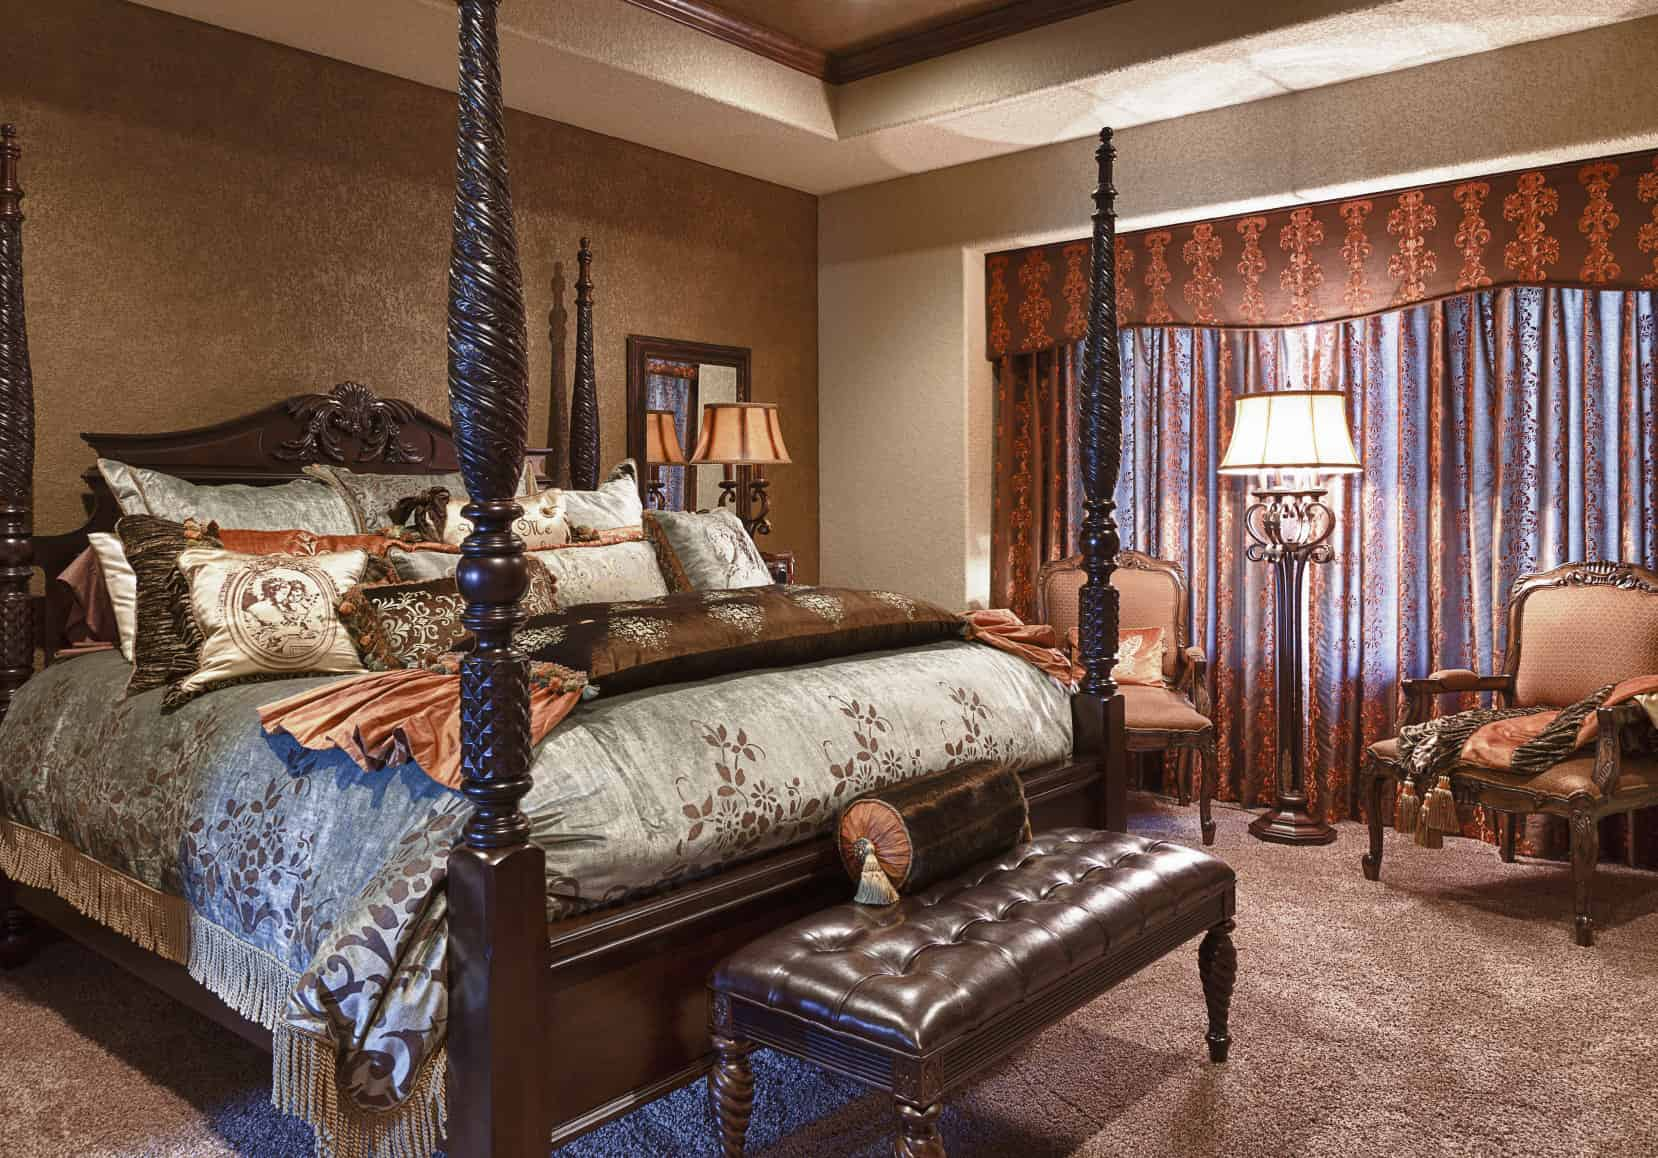 This primary bedroom features a gorgeous tray ceiling and brown walls, along with thick carpet flooring. The room has a classy bed with a sitting area on the side, lighted by a floor lamp.